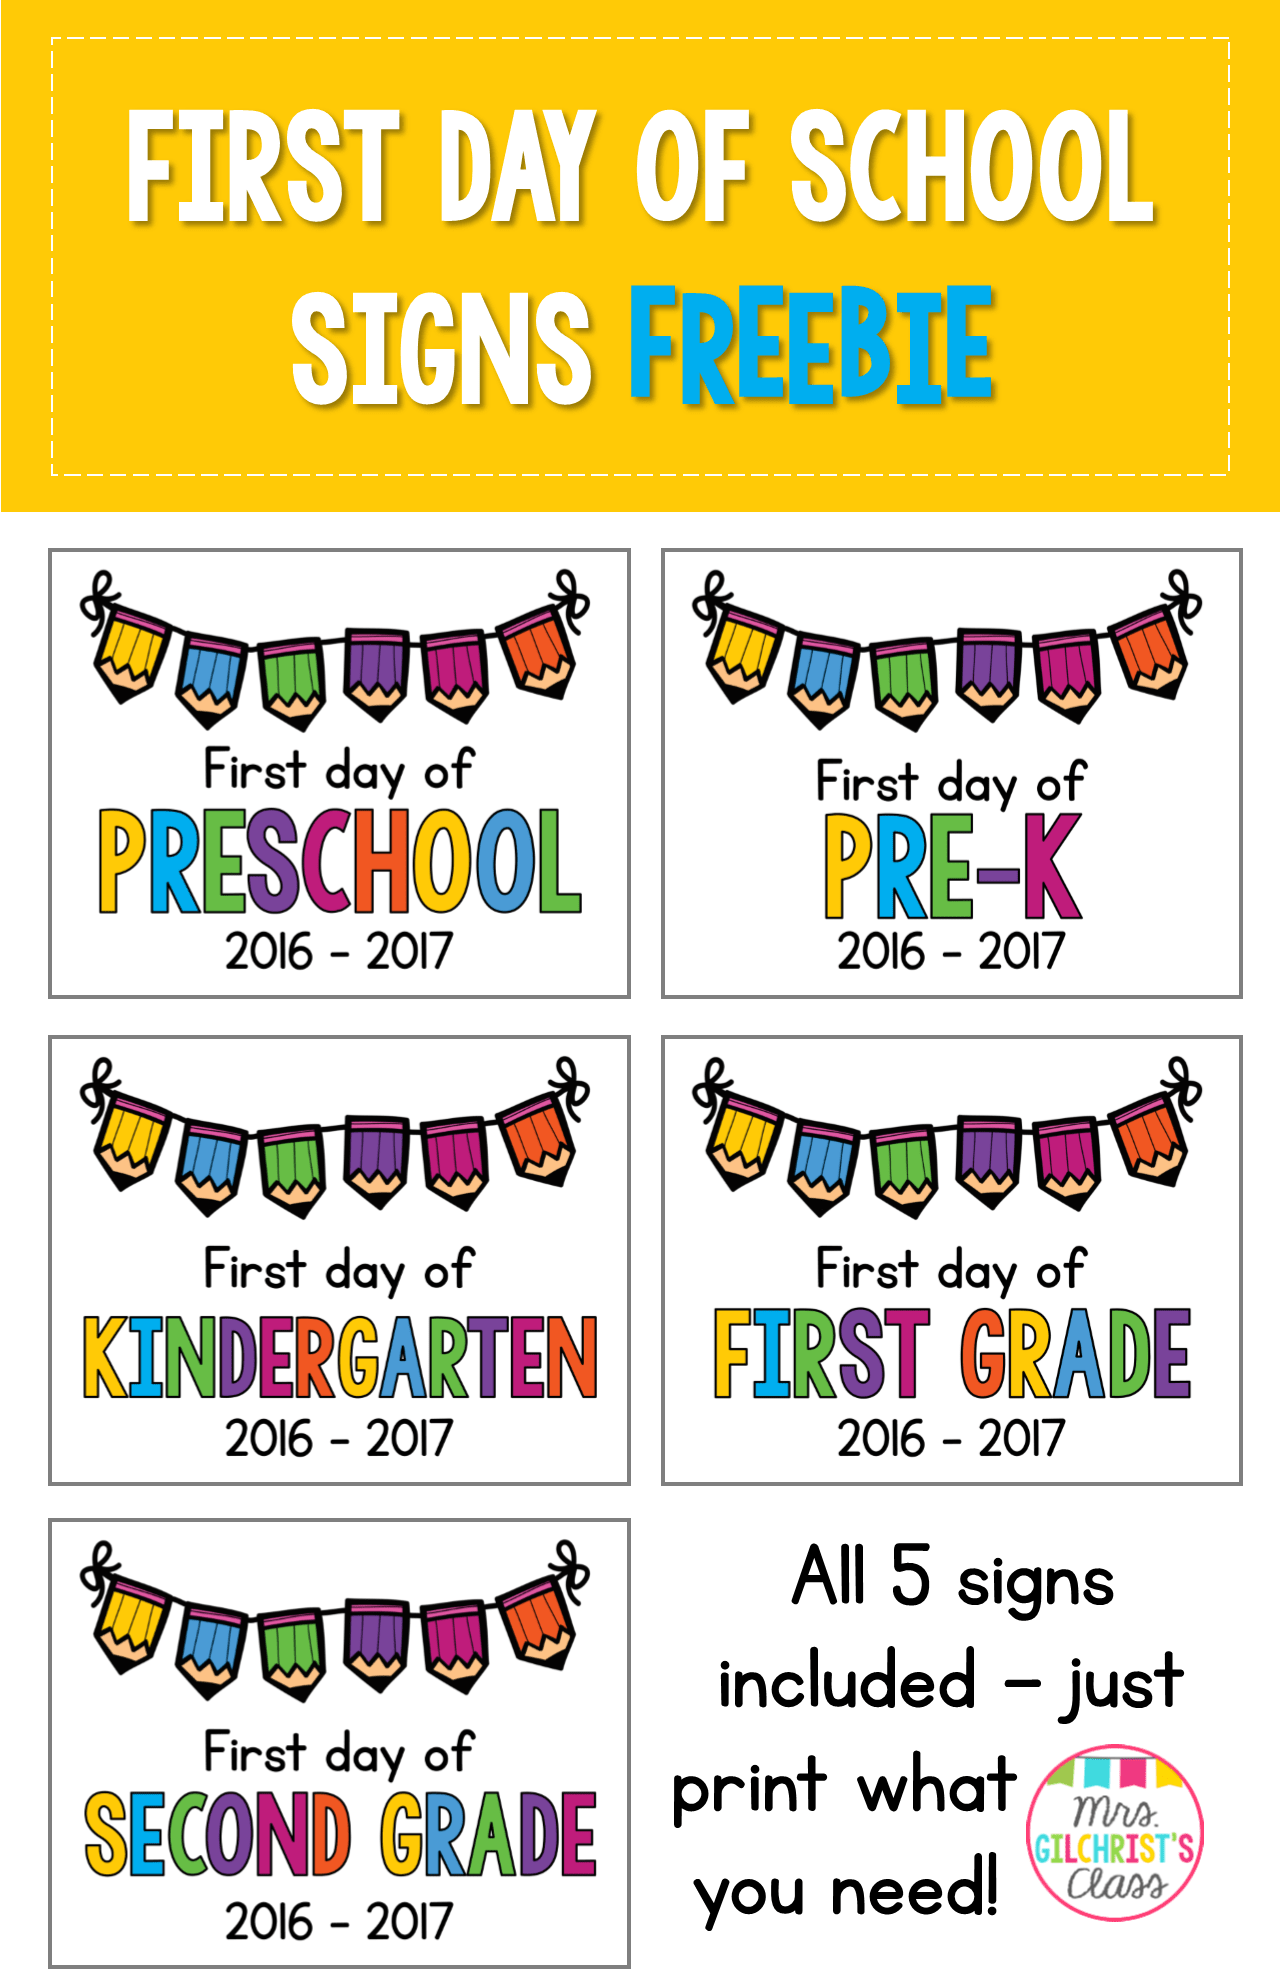 First Day Of School Printables For Second Grade